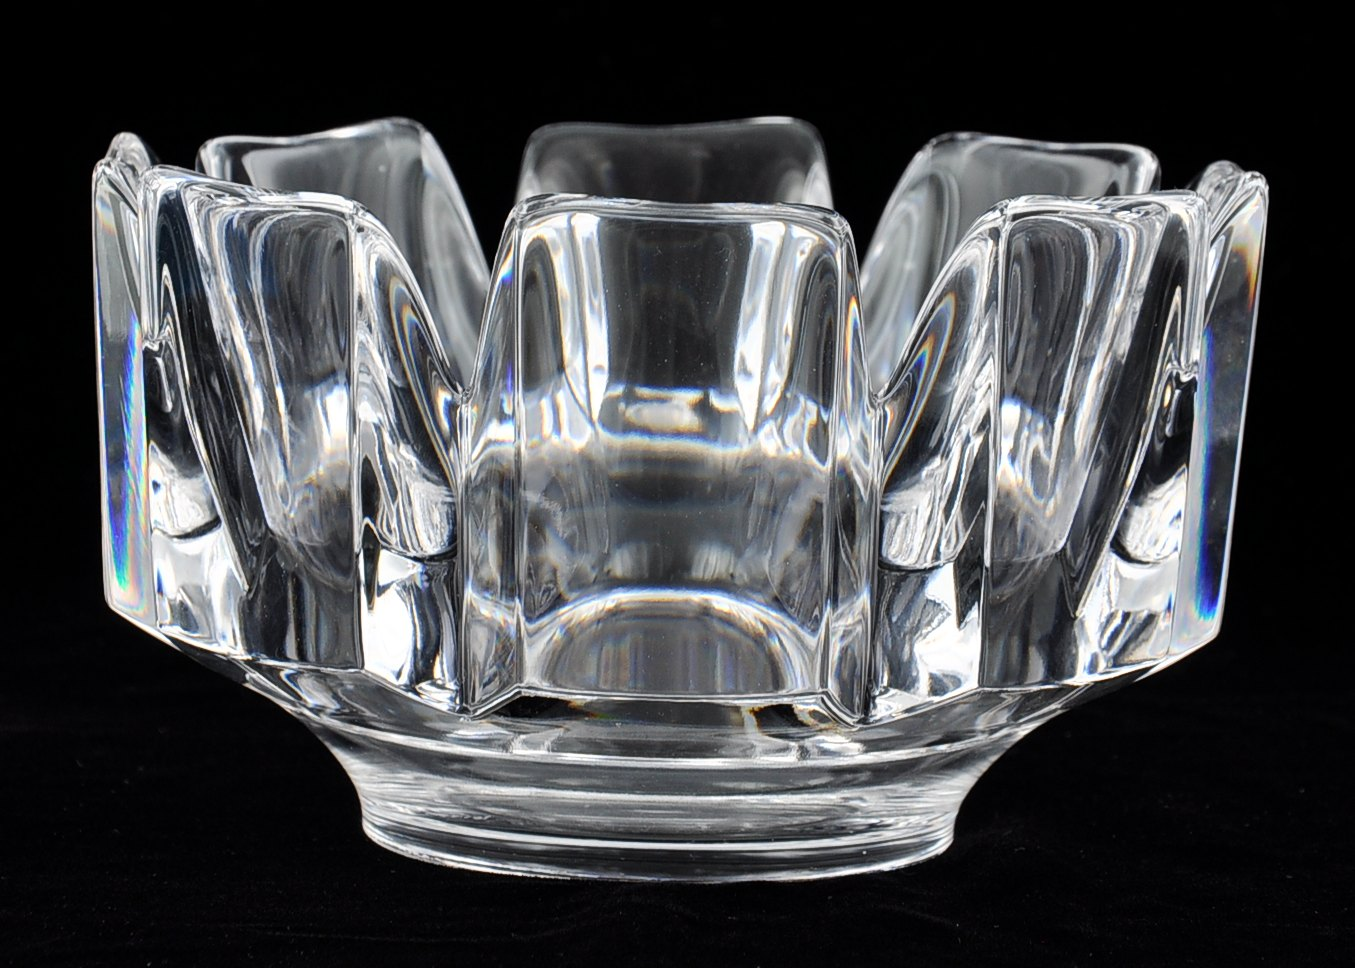 An Orrefors Crown Crystal Bowl 05 20 10 Sold 63 25